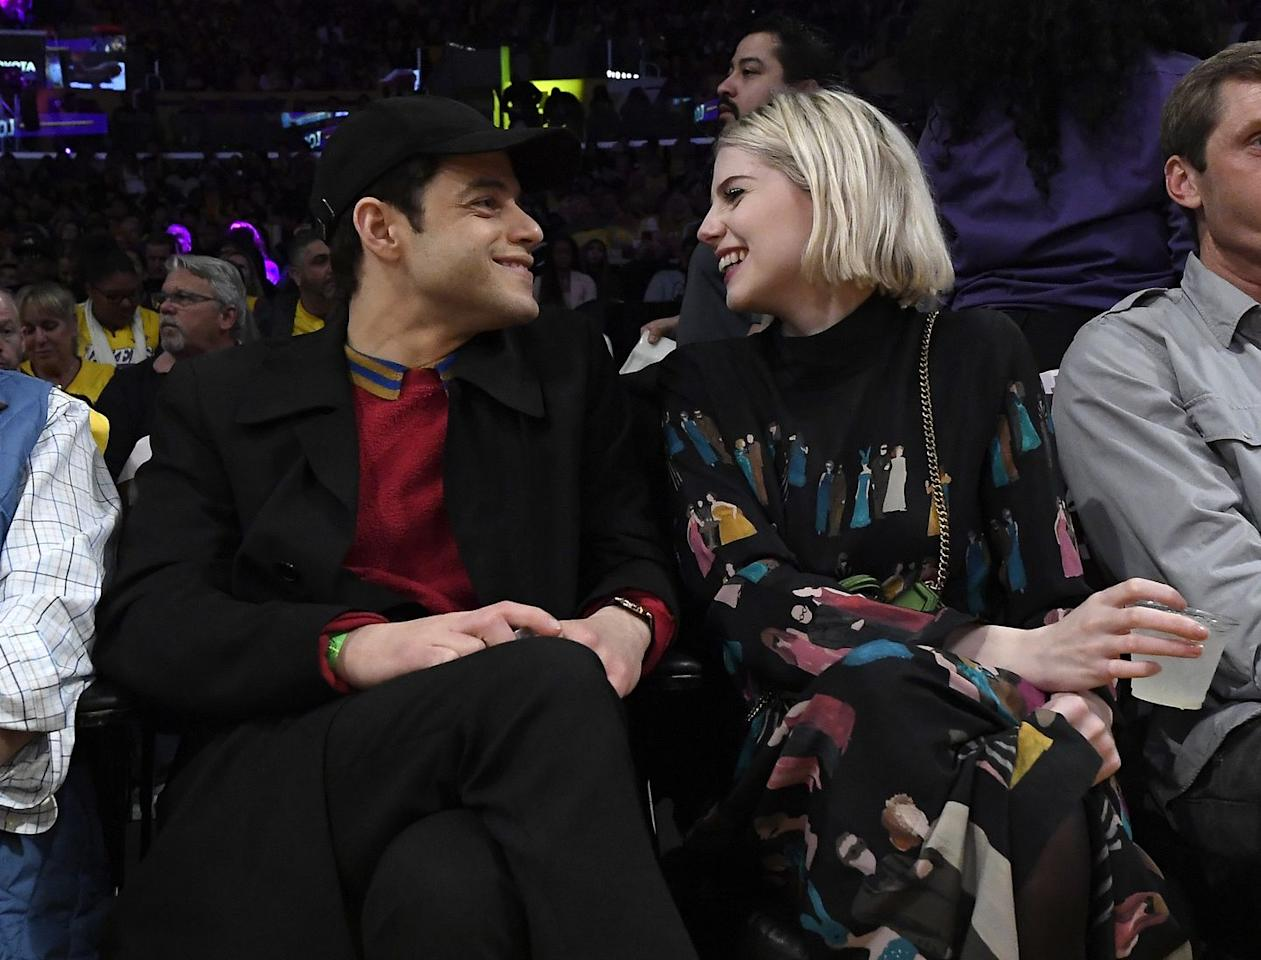 <p>The couple laughed together in courtside seats to watch the Lakers take on the Washington Wizards in LA in November 2019.</p>